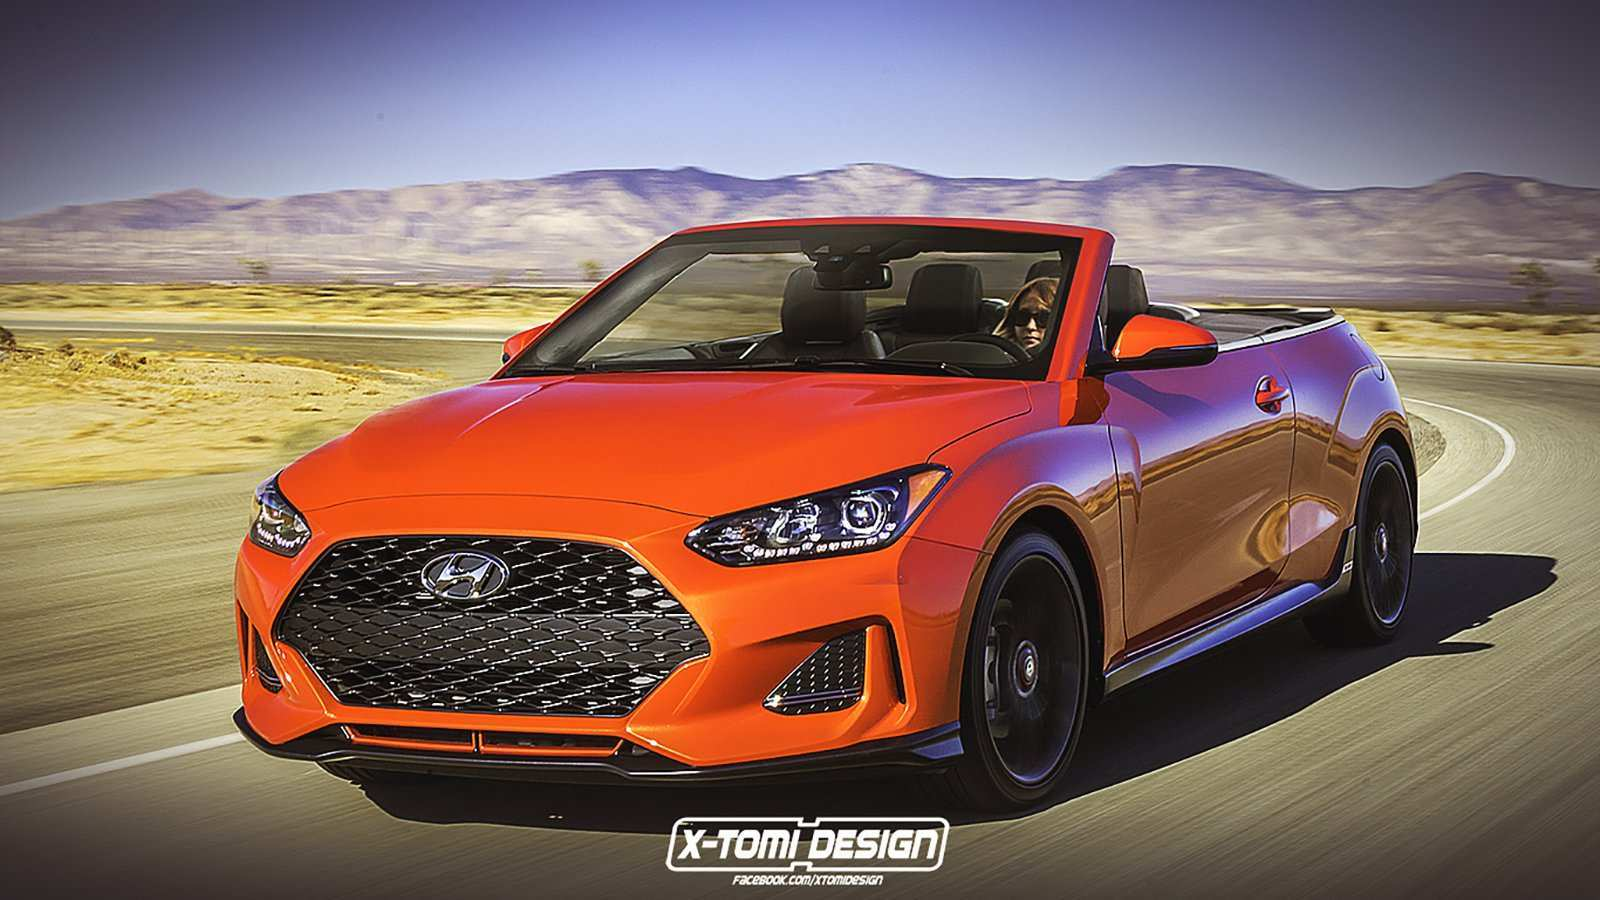 27 New 2020 Hyundai Veloster Release Date with 2020 Hyundai Veloster